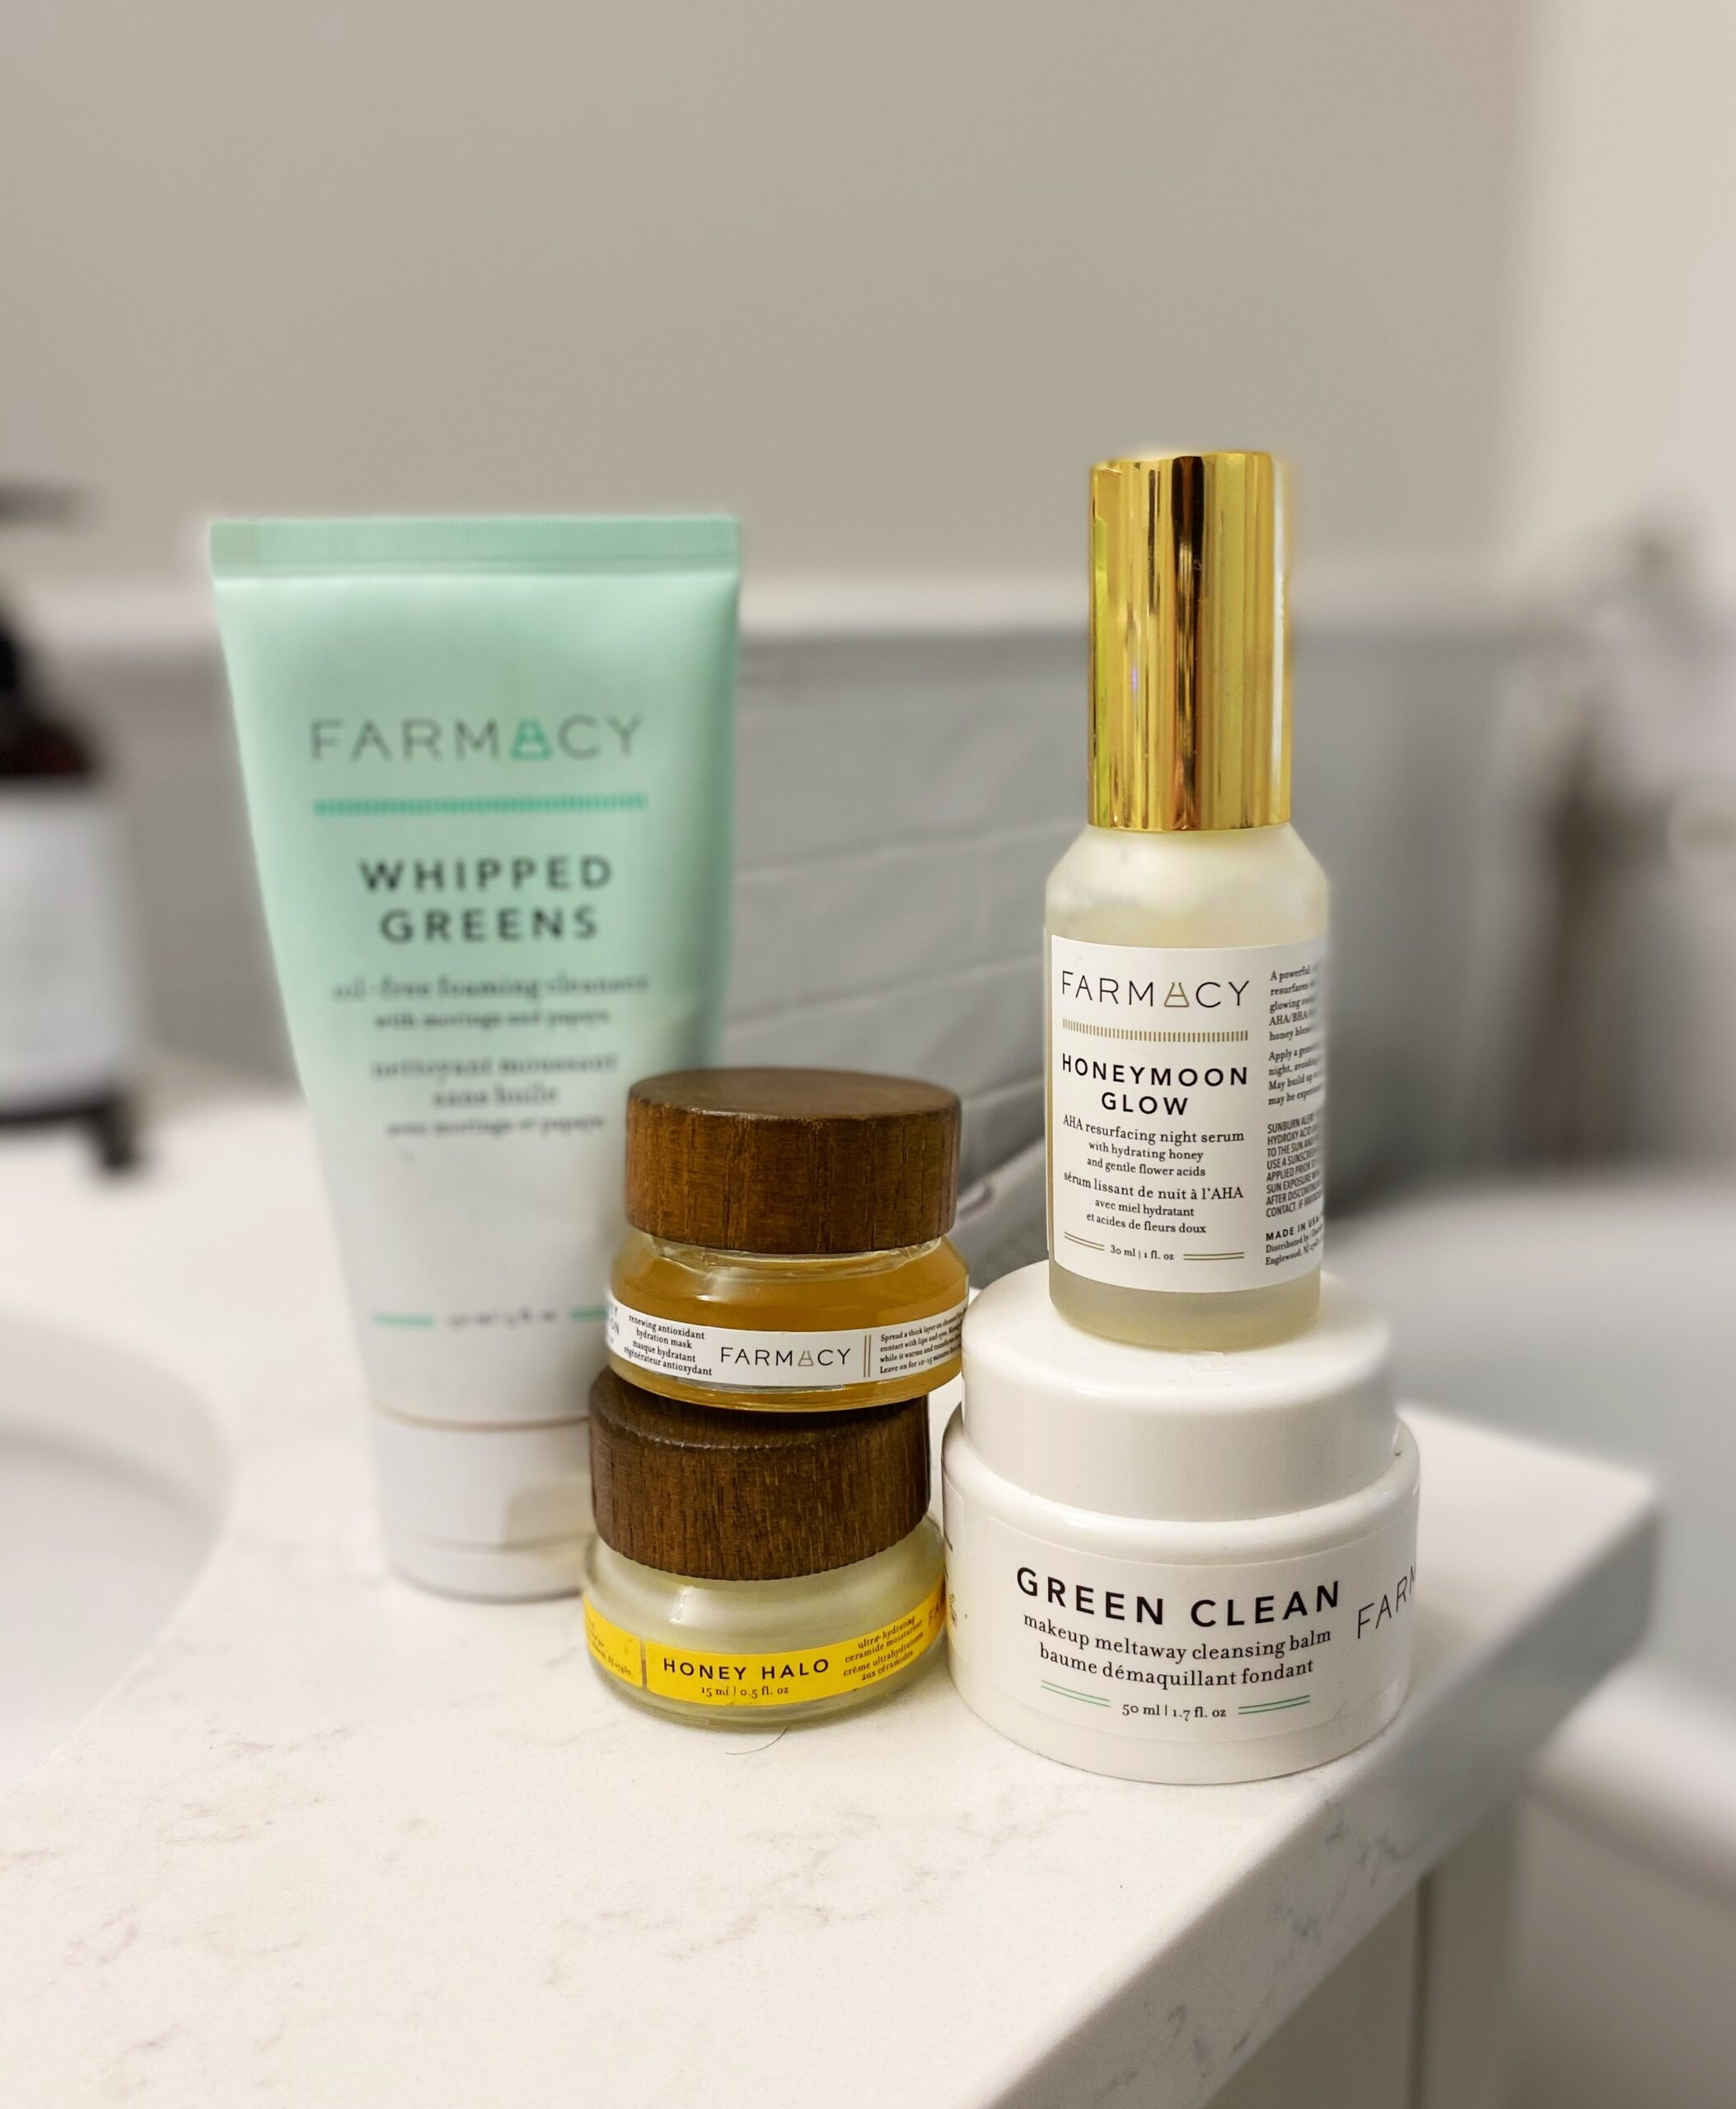 products from farmacy beauty